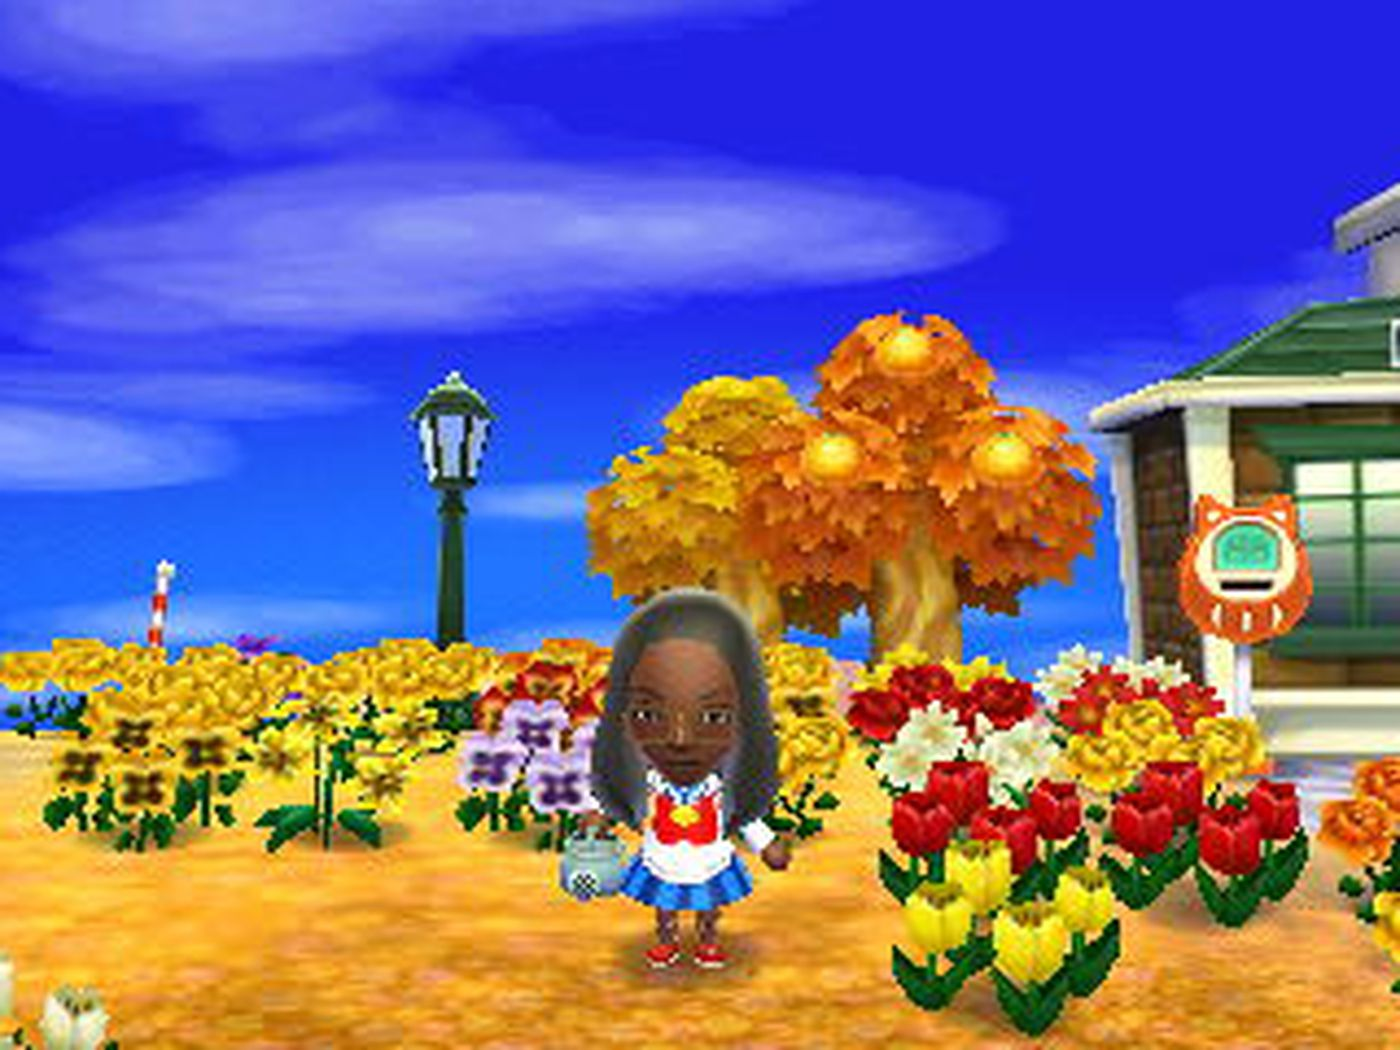 Animal Crossing New Leaf Gives Players New Shortcut For Changing Their Skin Tone Polygon